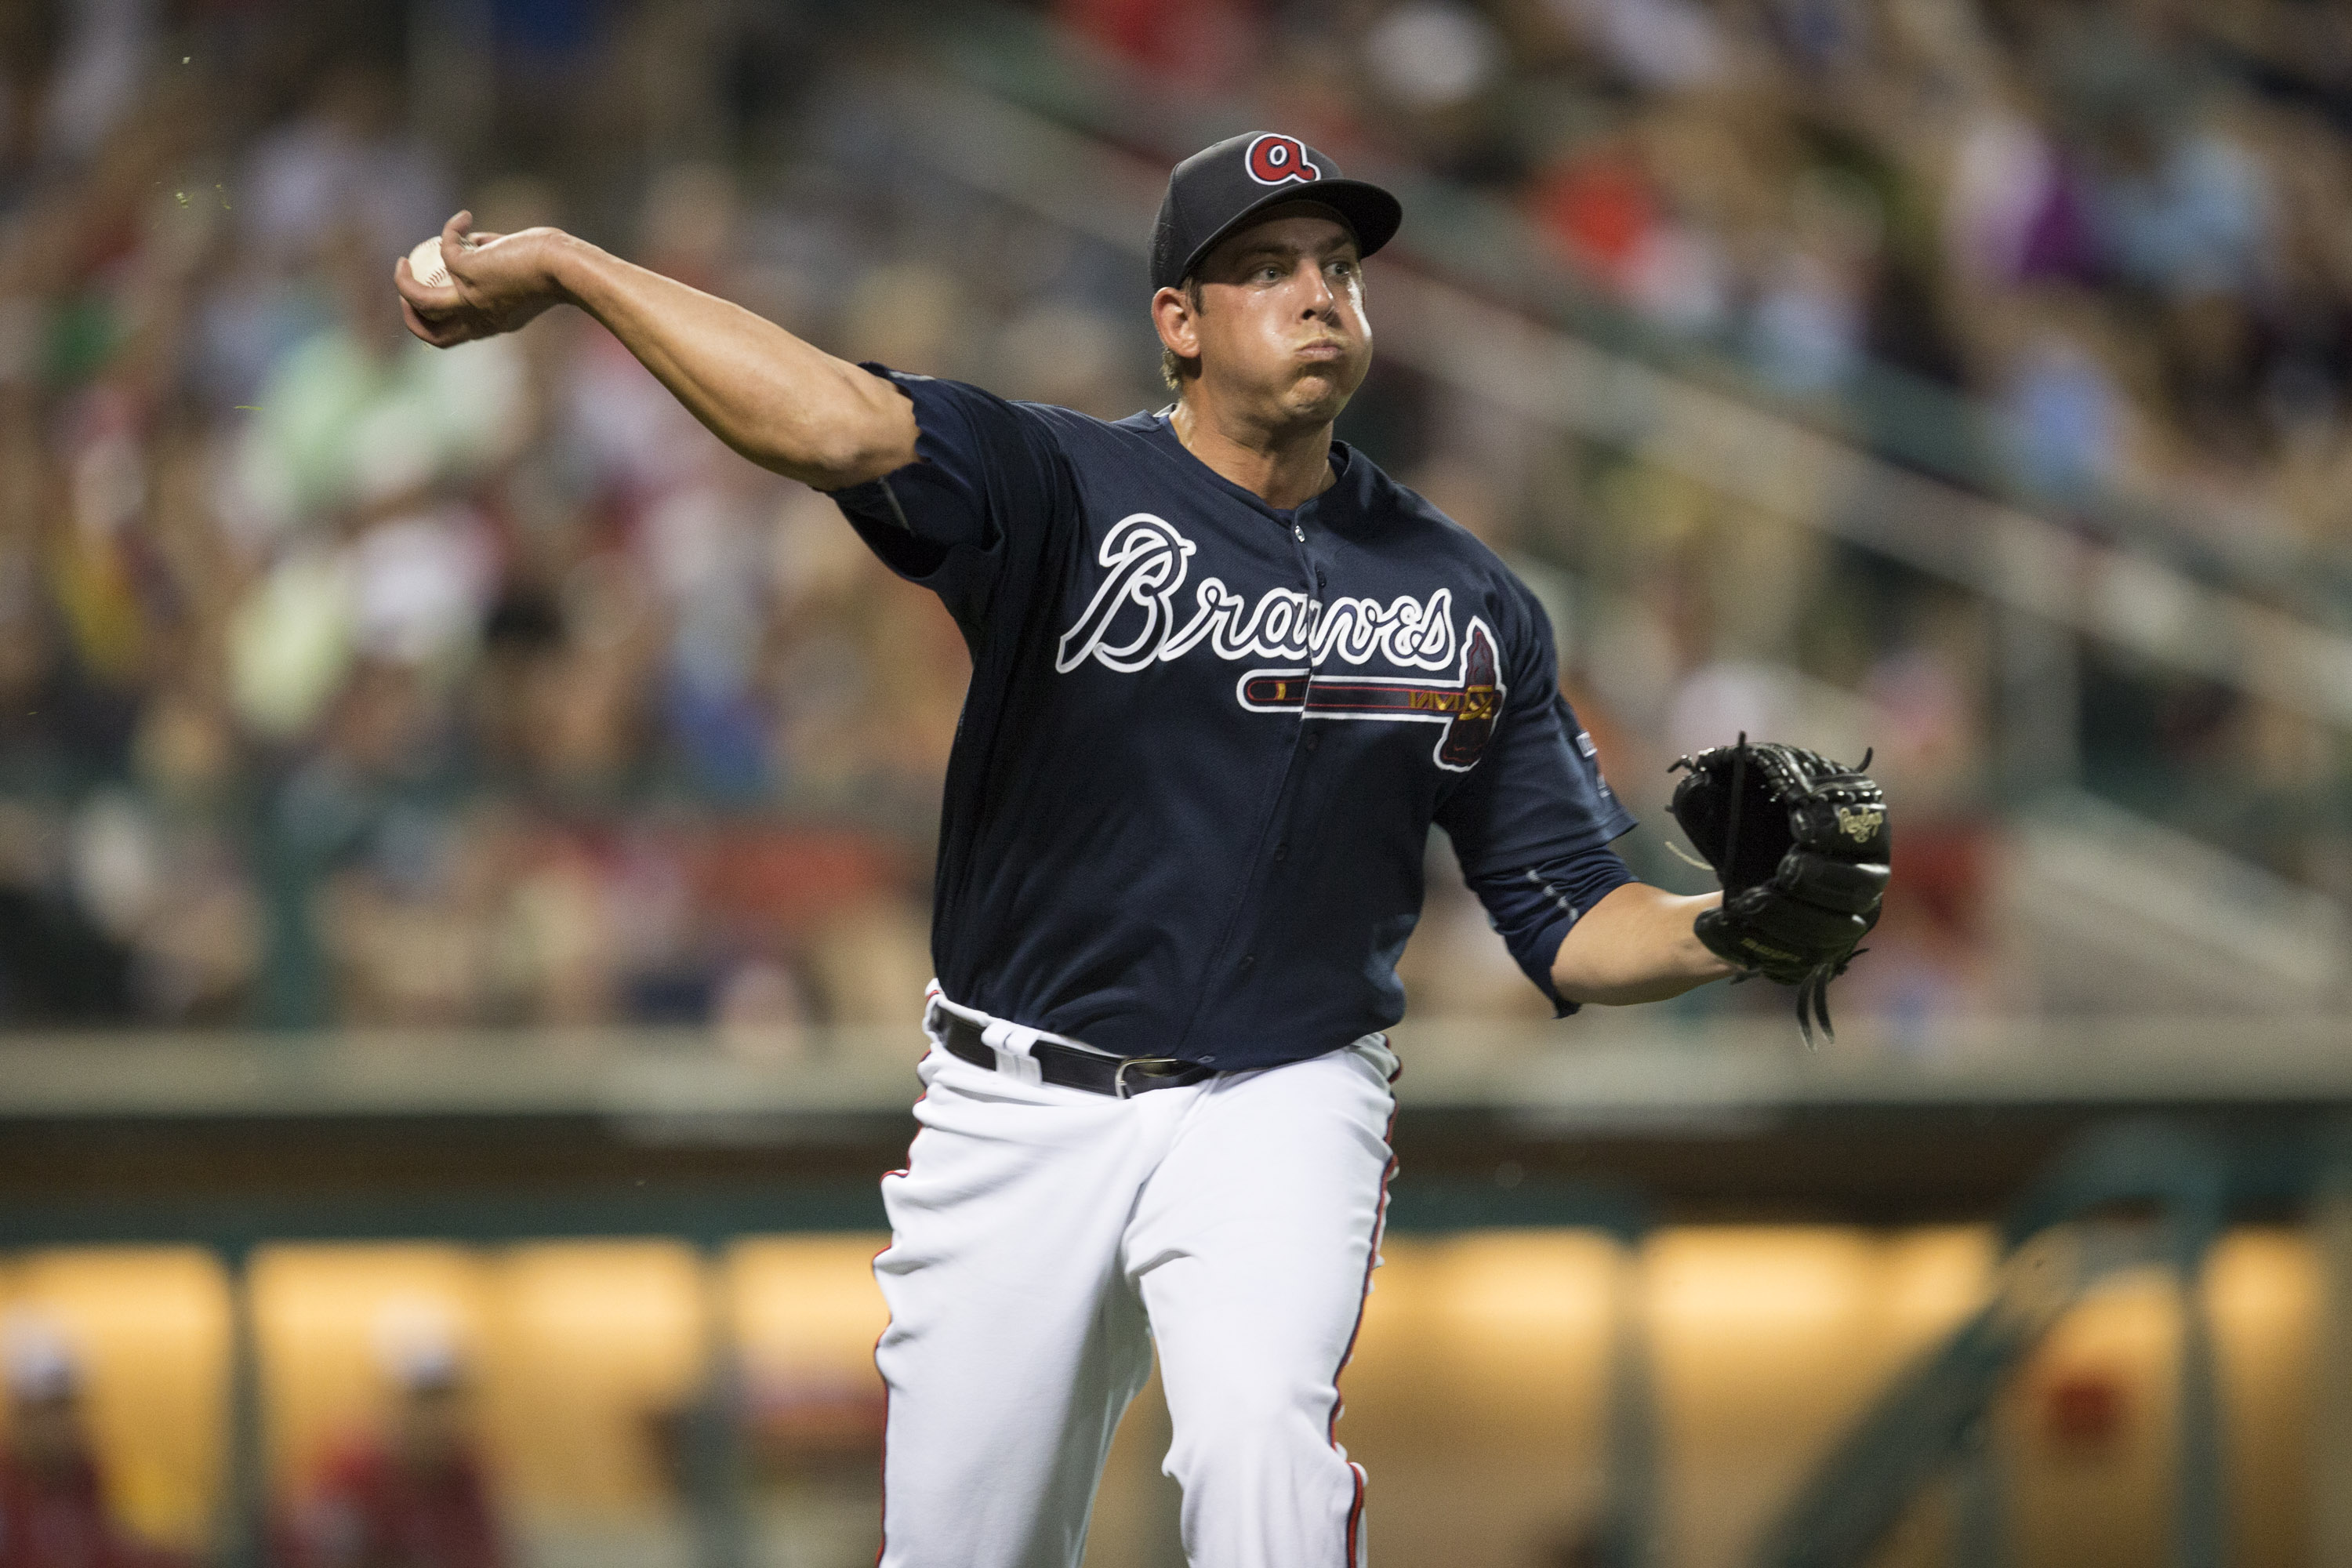 Atlanta Braves pitcher Aaron Blair fields the ball and throws out the runner during a spring training baseball game against the Washington Nationals, Saturday, March 12, 2016, in Kissimmee, Fla. (AP Photo/Willie J. Allen Jr.)